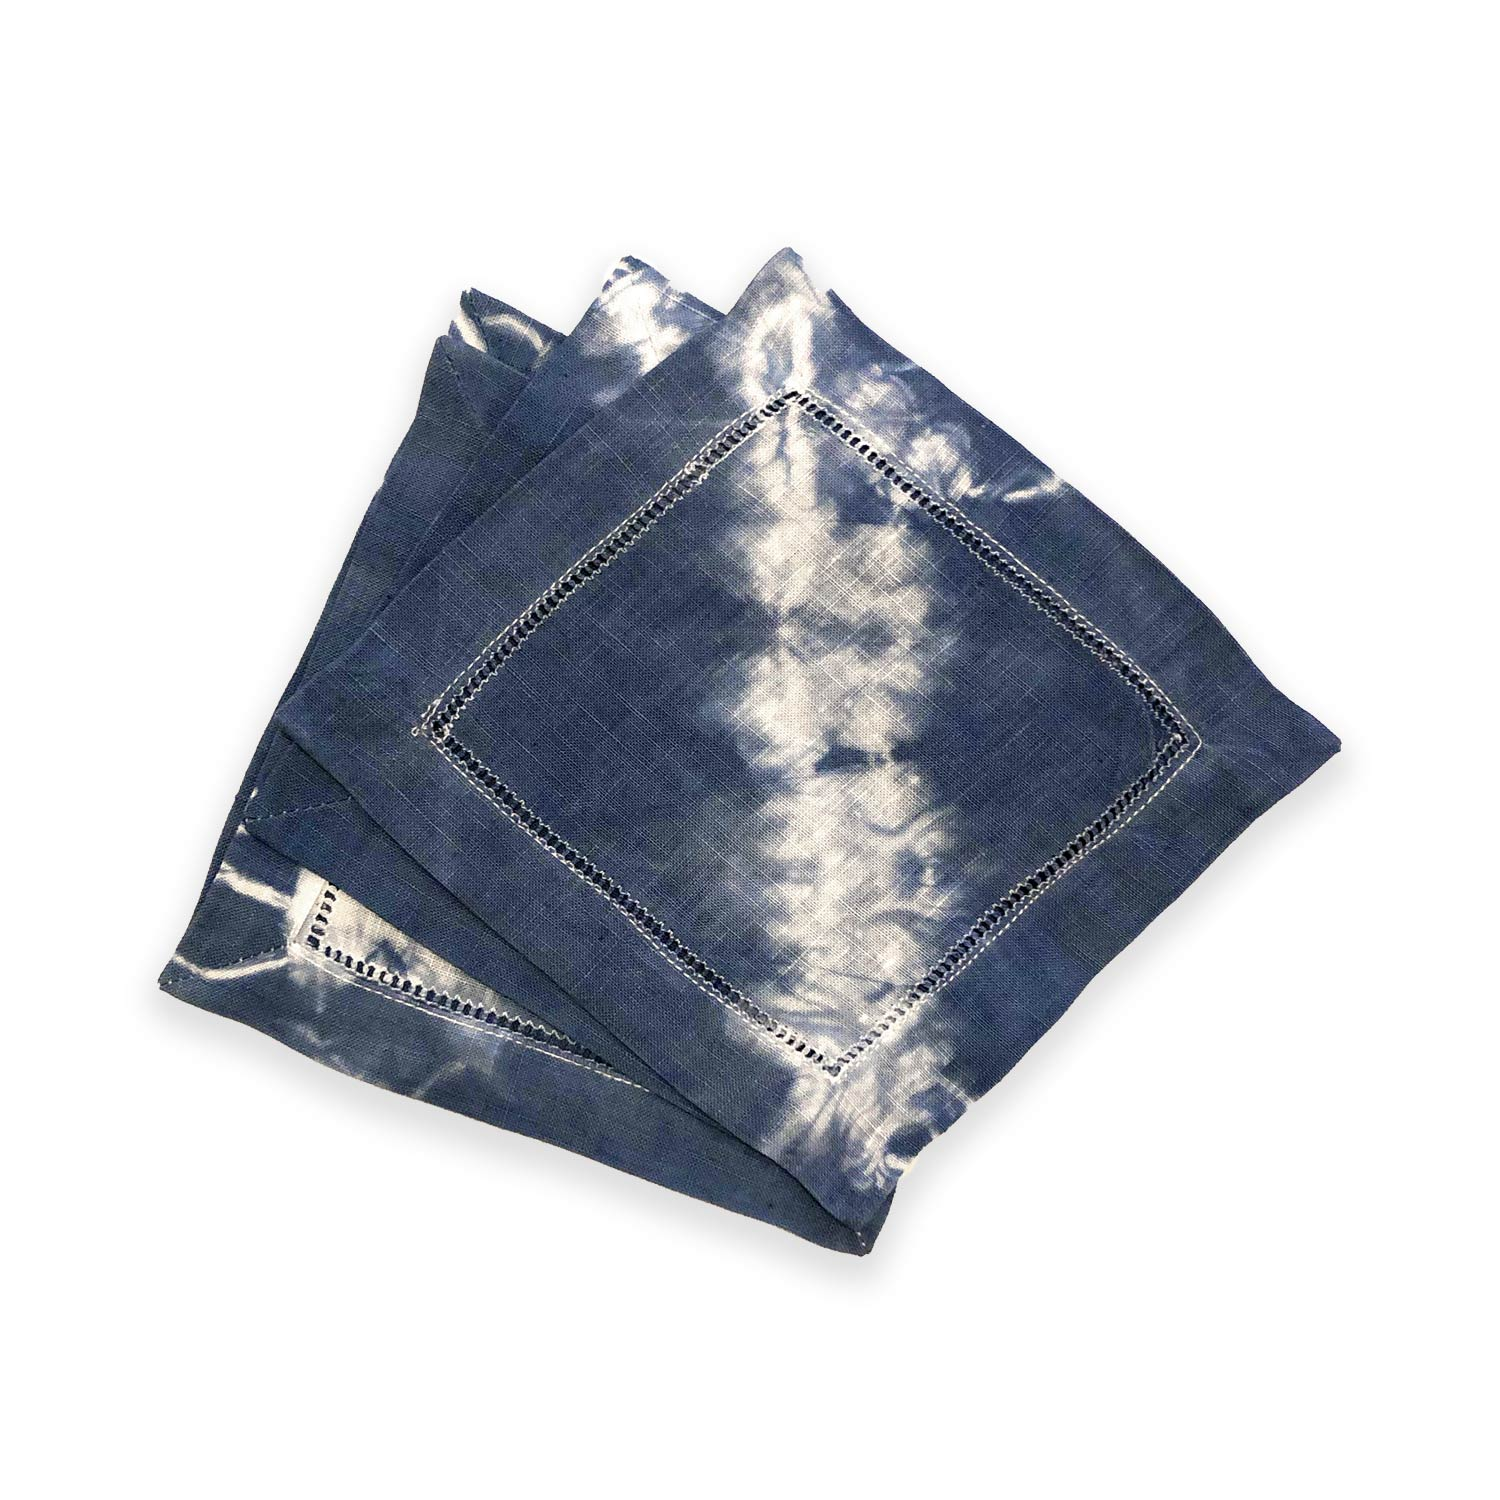 Hand-dyed Dark Blue Shibori Cocktail Napkins (Set of 6)